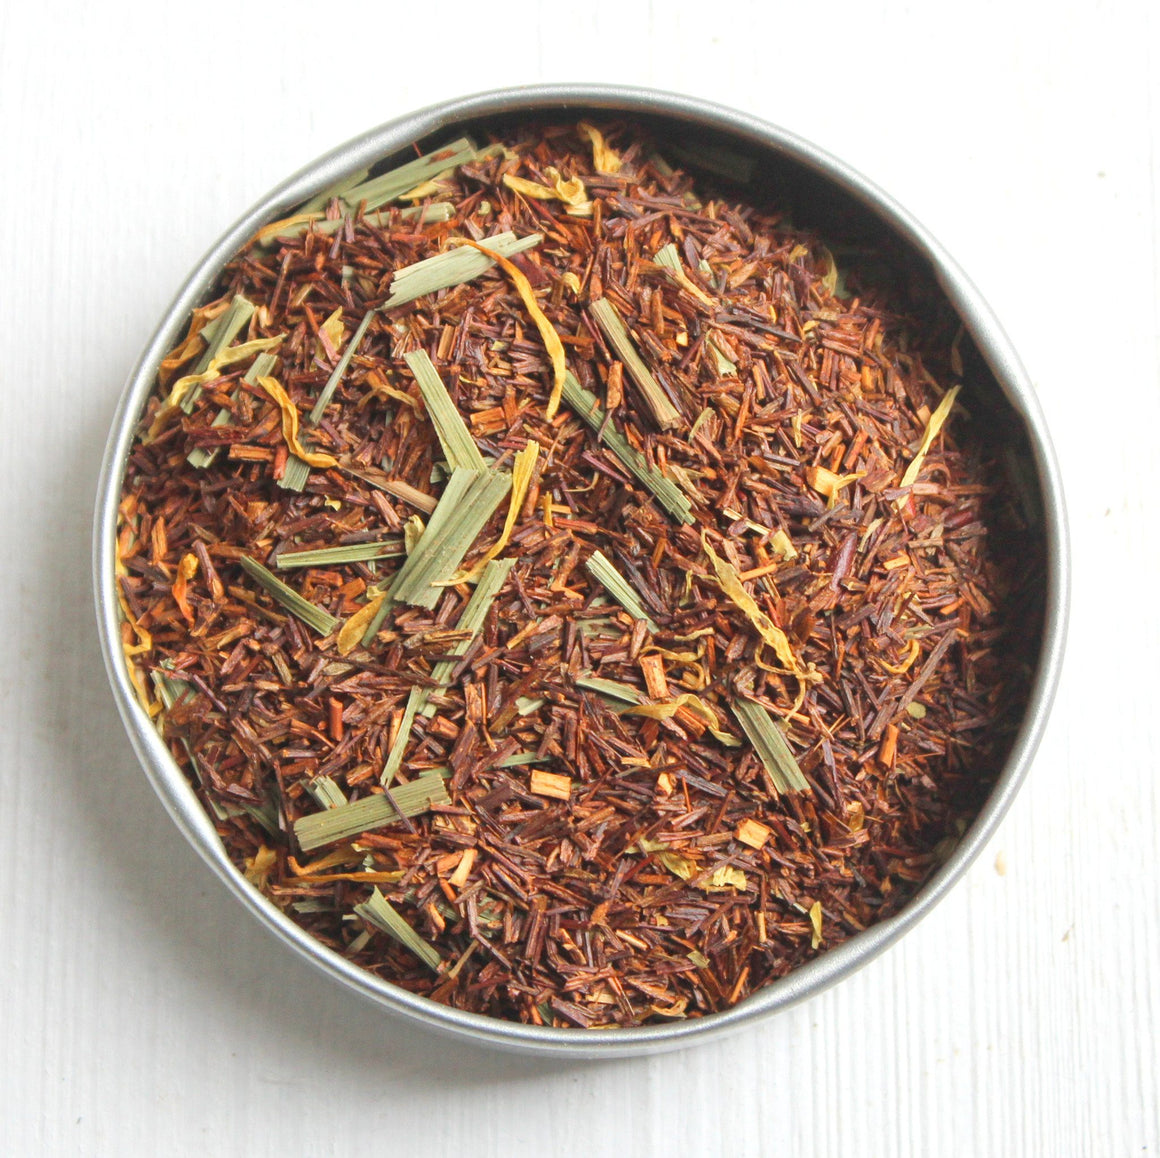 Loose Leaf Infusion - Zesty Lemon Rooibos